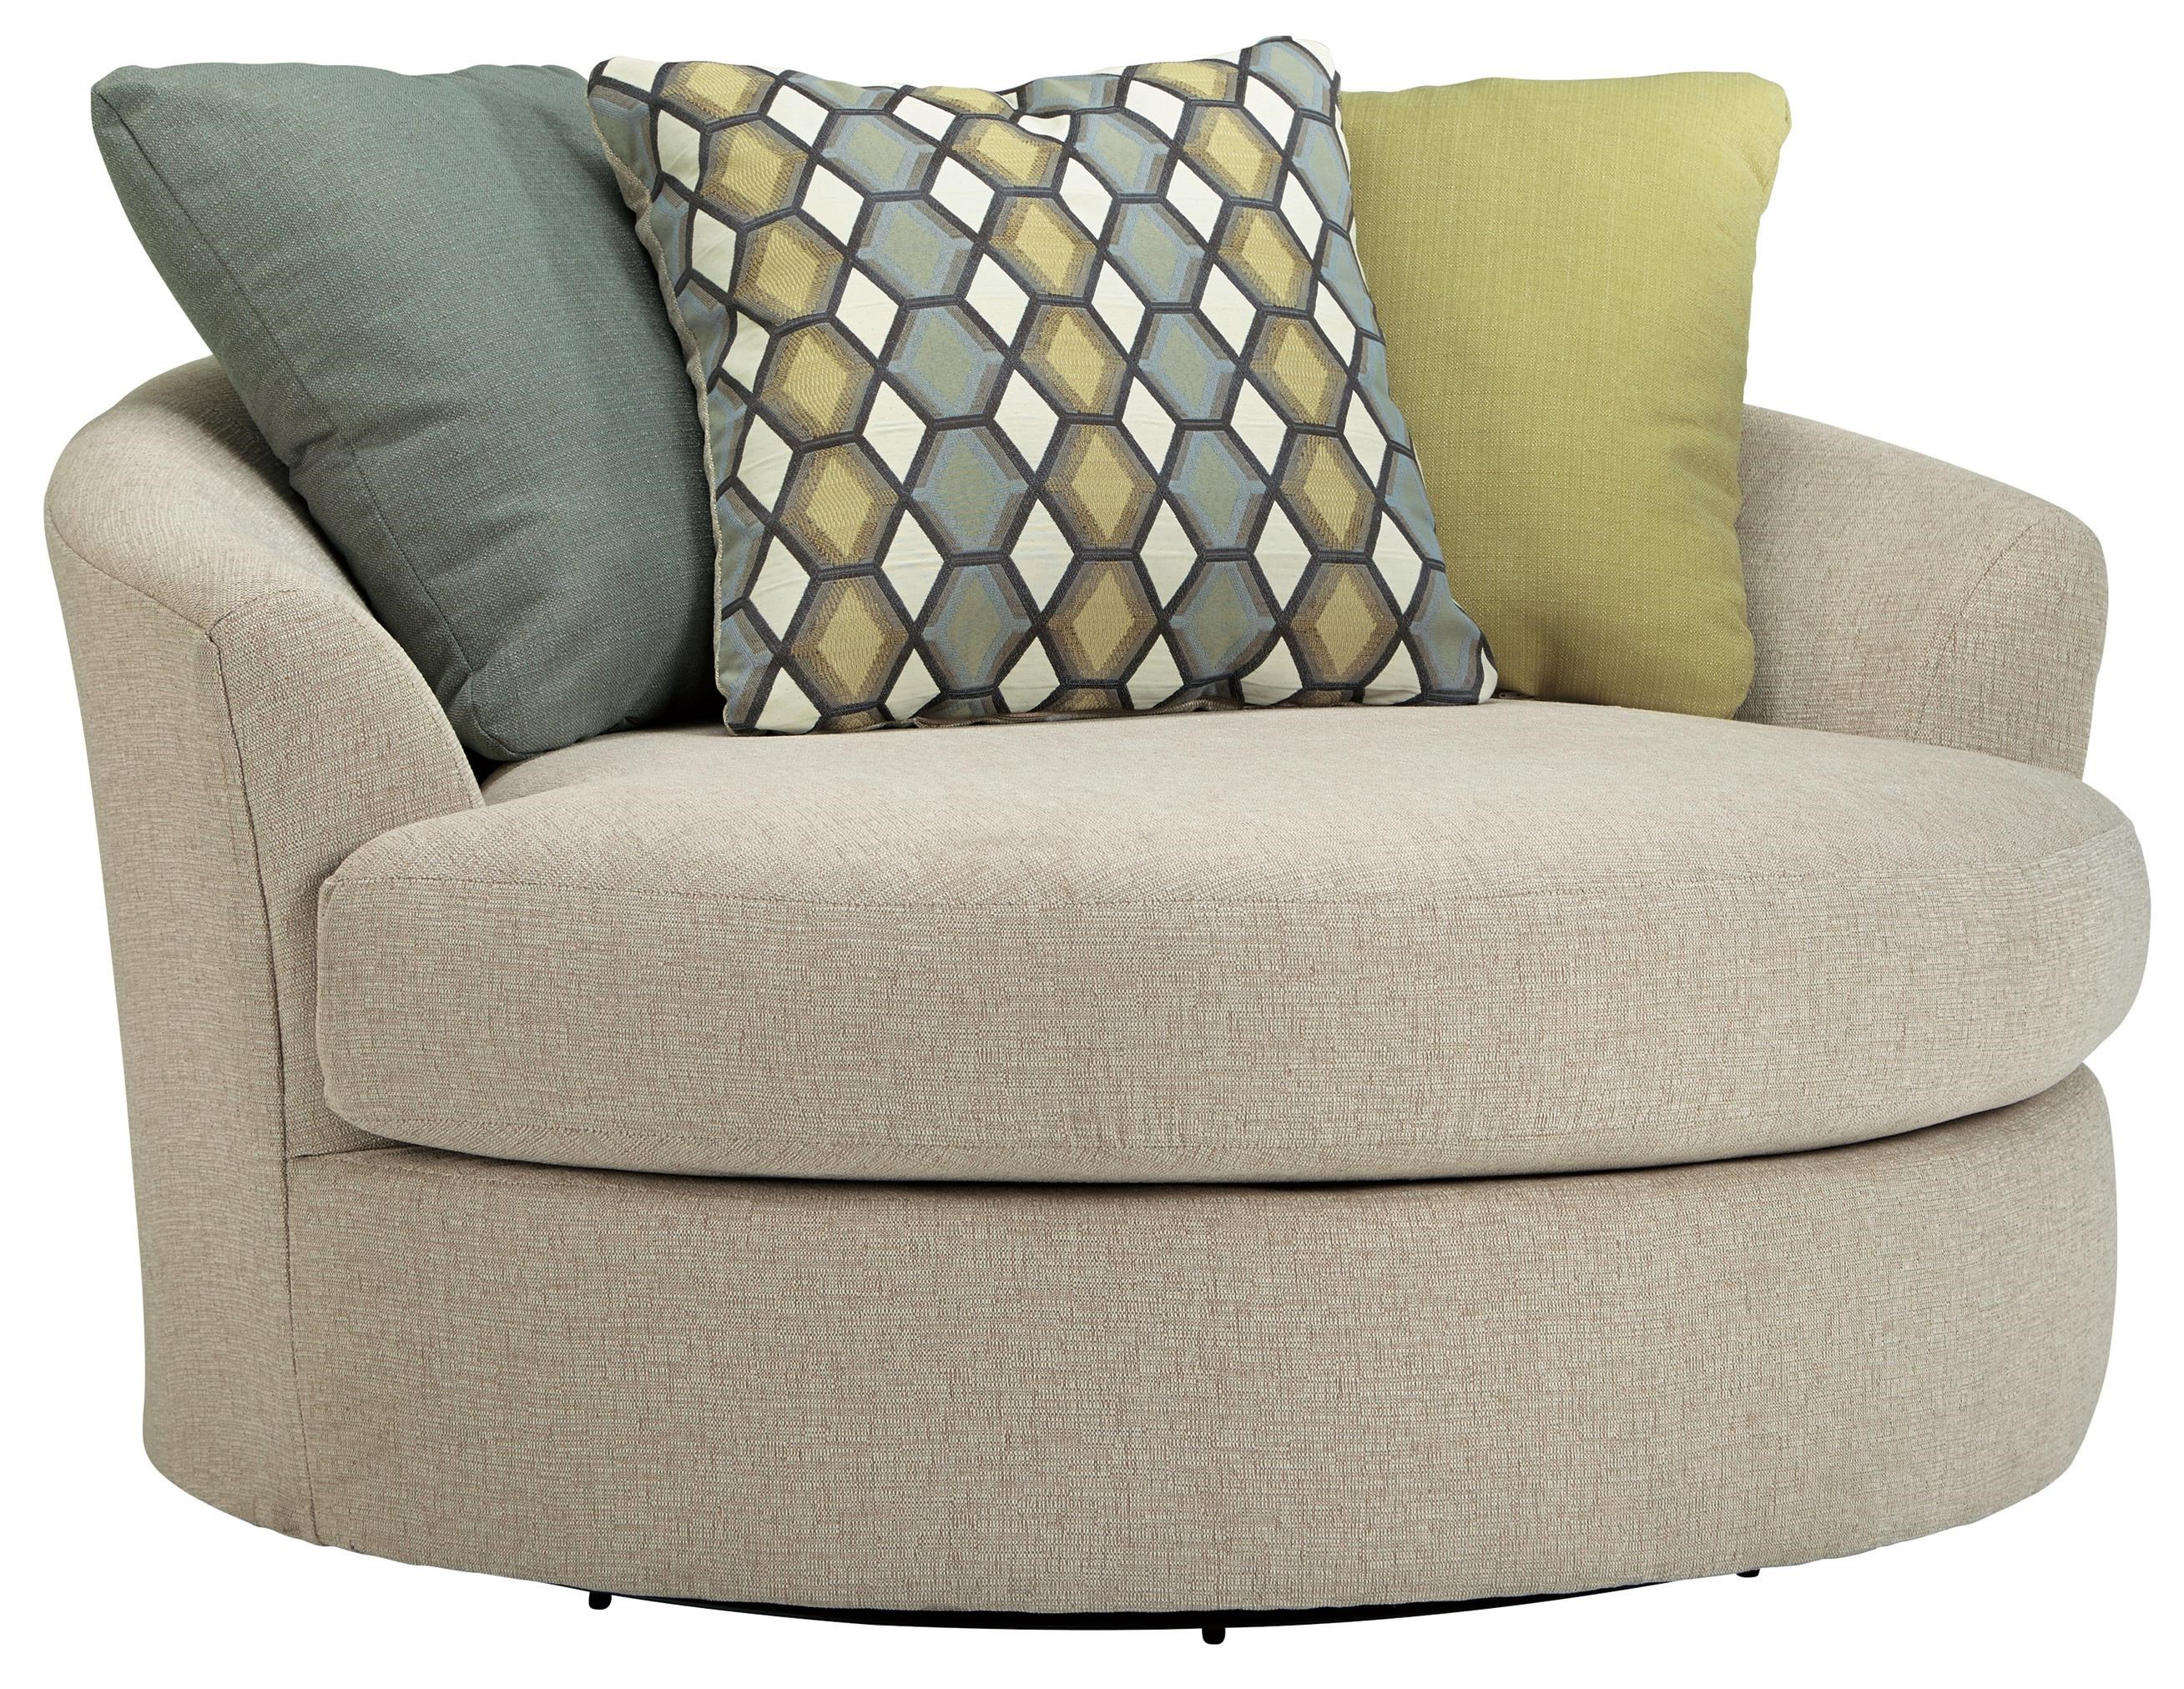 Benchcraft Casheral Round Oversized Swivel Accent Chair with Loose Back Pillows - Samu0026#39;s ...